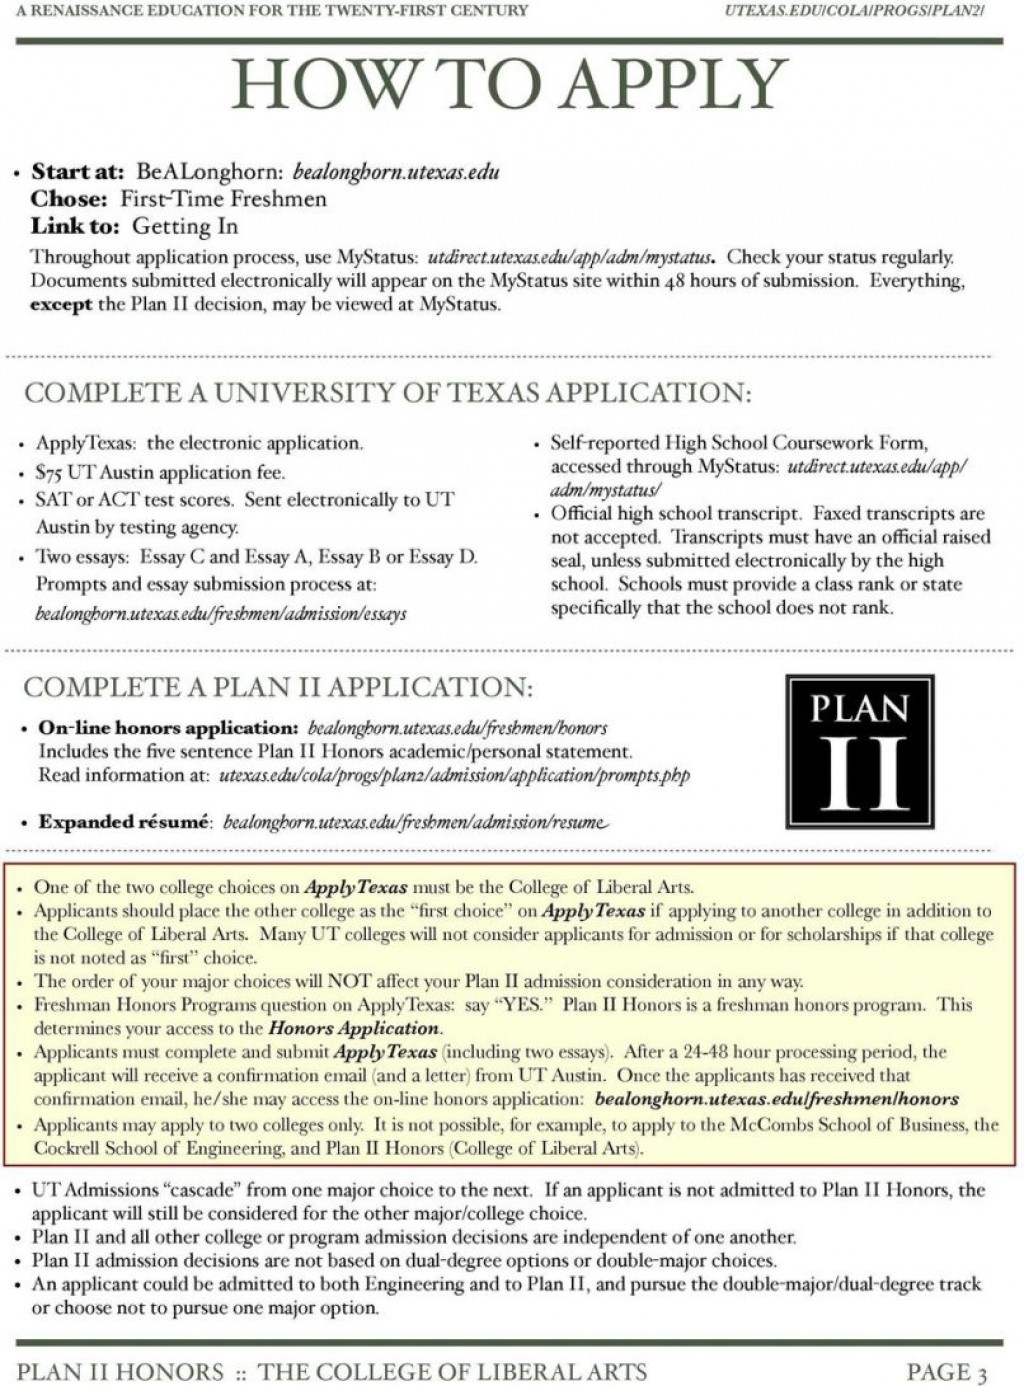 006 Applytexas Essay Prompts Poemdoc Or Apply Texas Topic Examples P Example Word Frightening Limit Requirements 2017 2019 Large